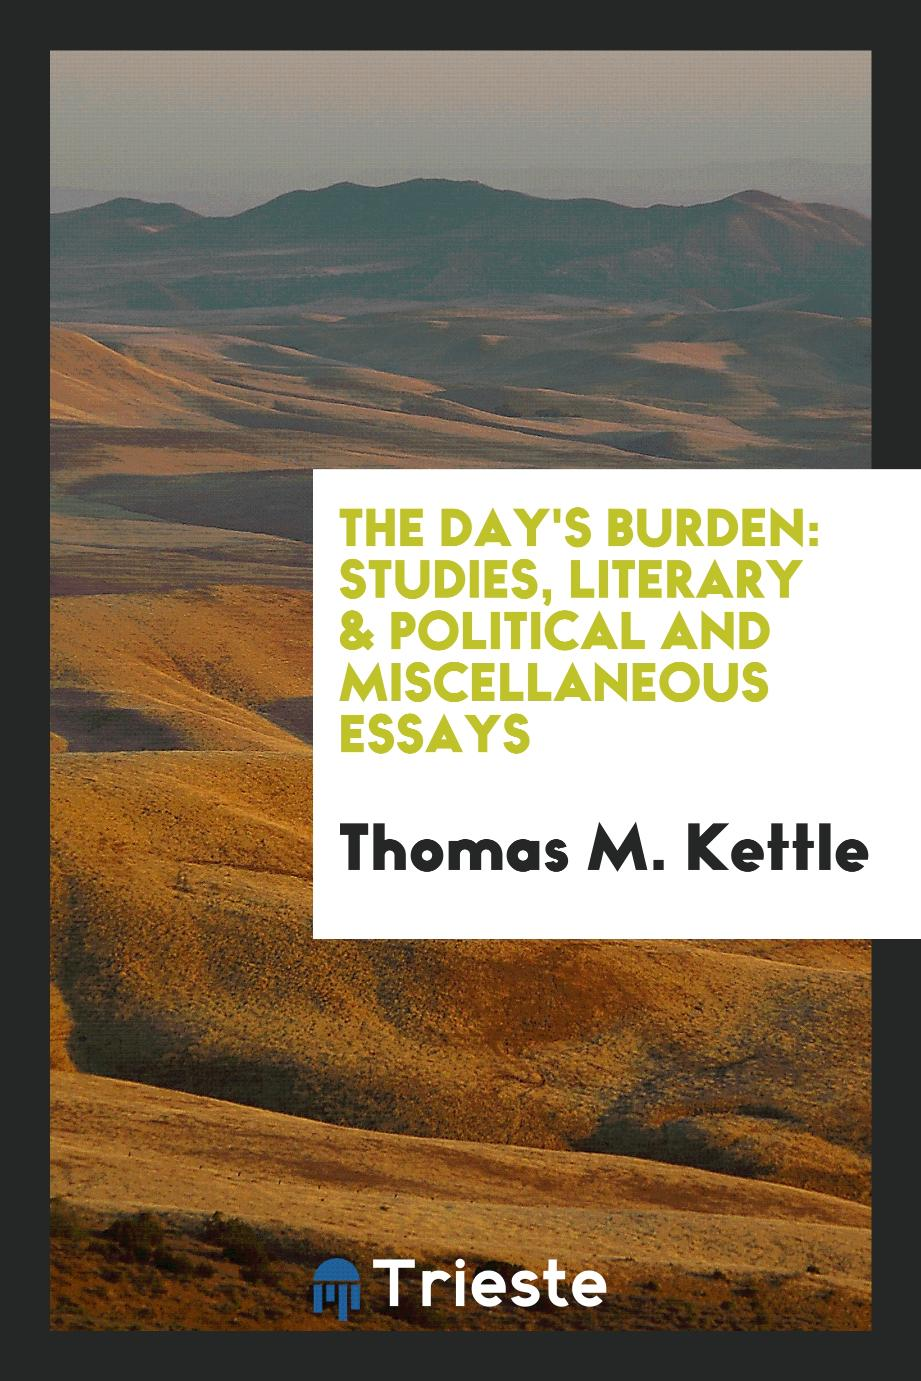 The Day's Burden: Studies, Literary & Political and Miscellaneous Essays